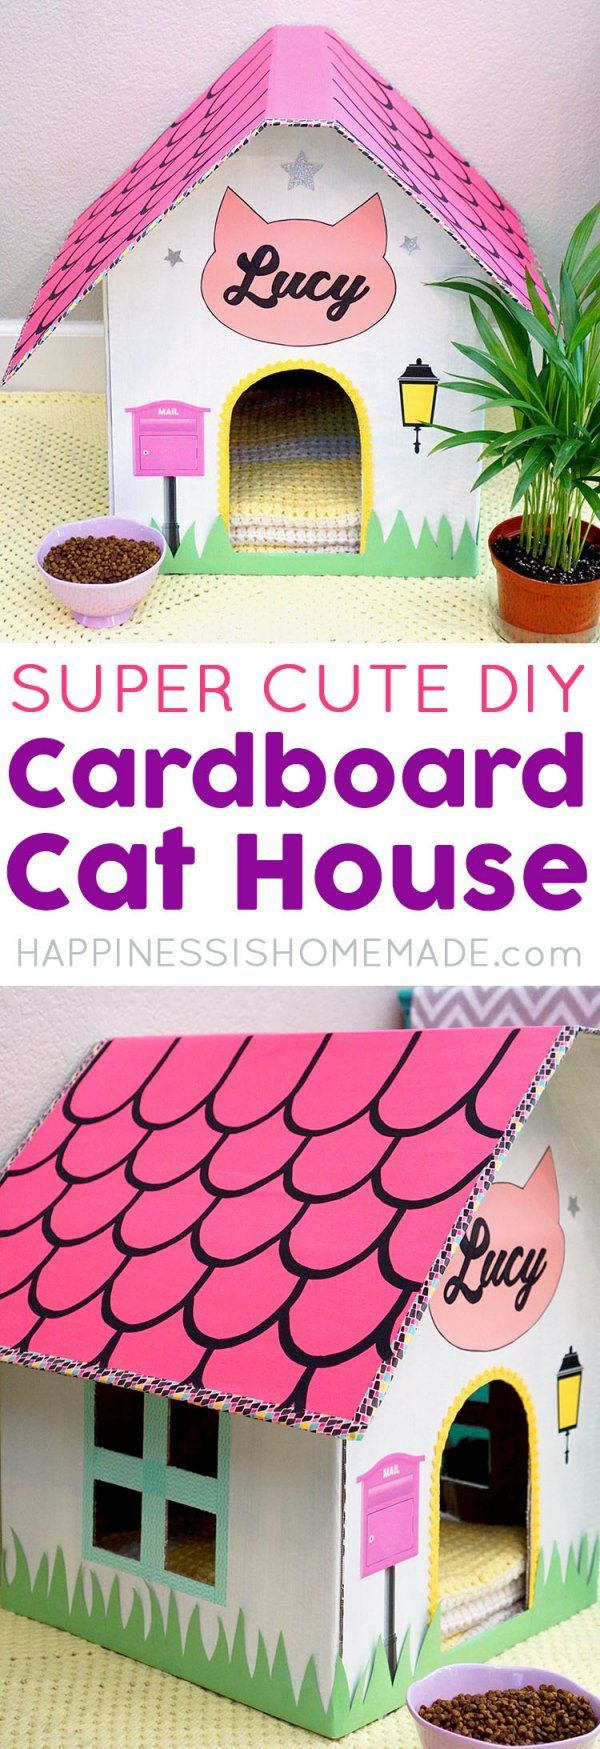 Make your own DIY Cardboard Cat House and create a cozy hangout for your favorite feline! Cats love lounging around in boxes, especially cute house-shaped ones!